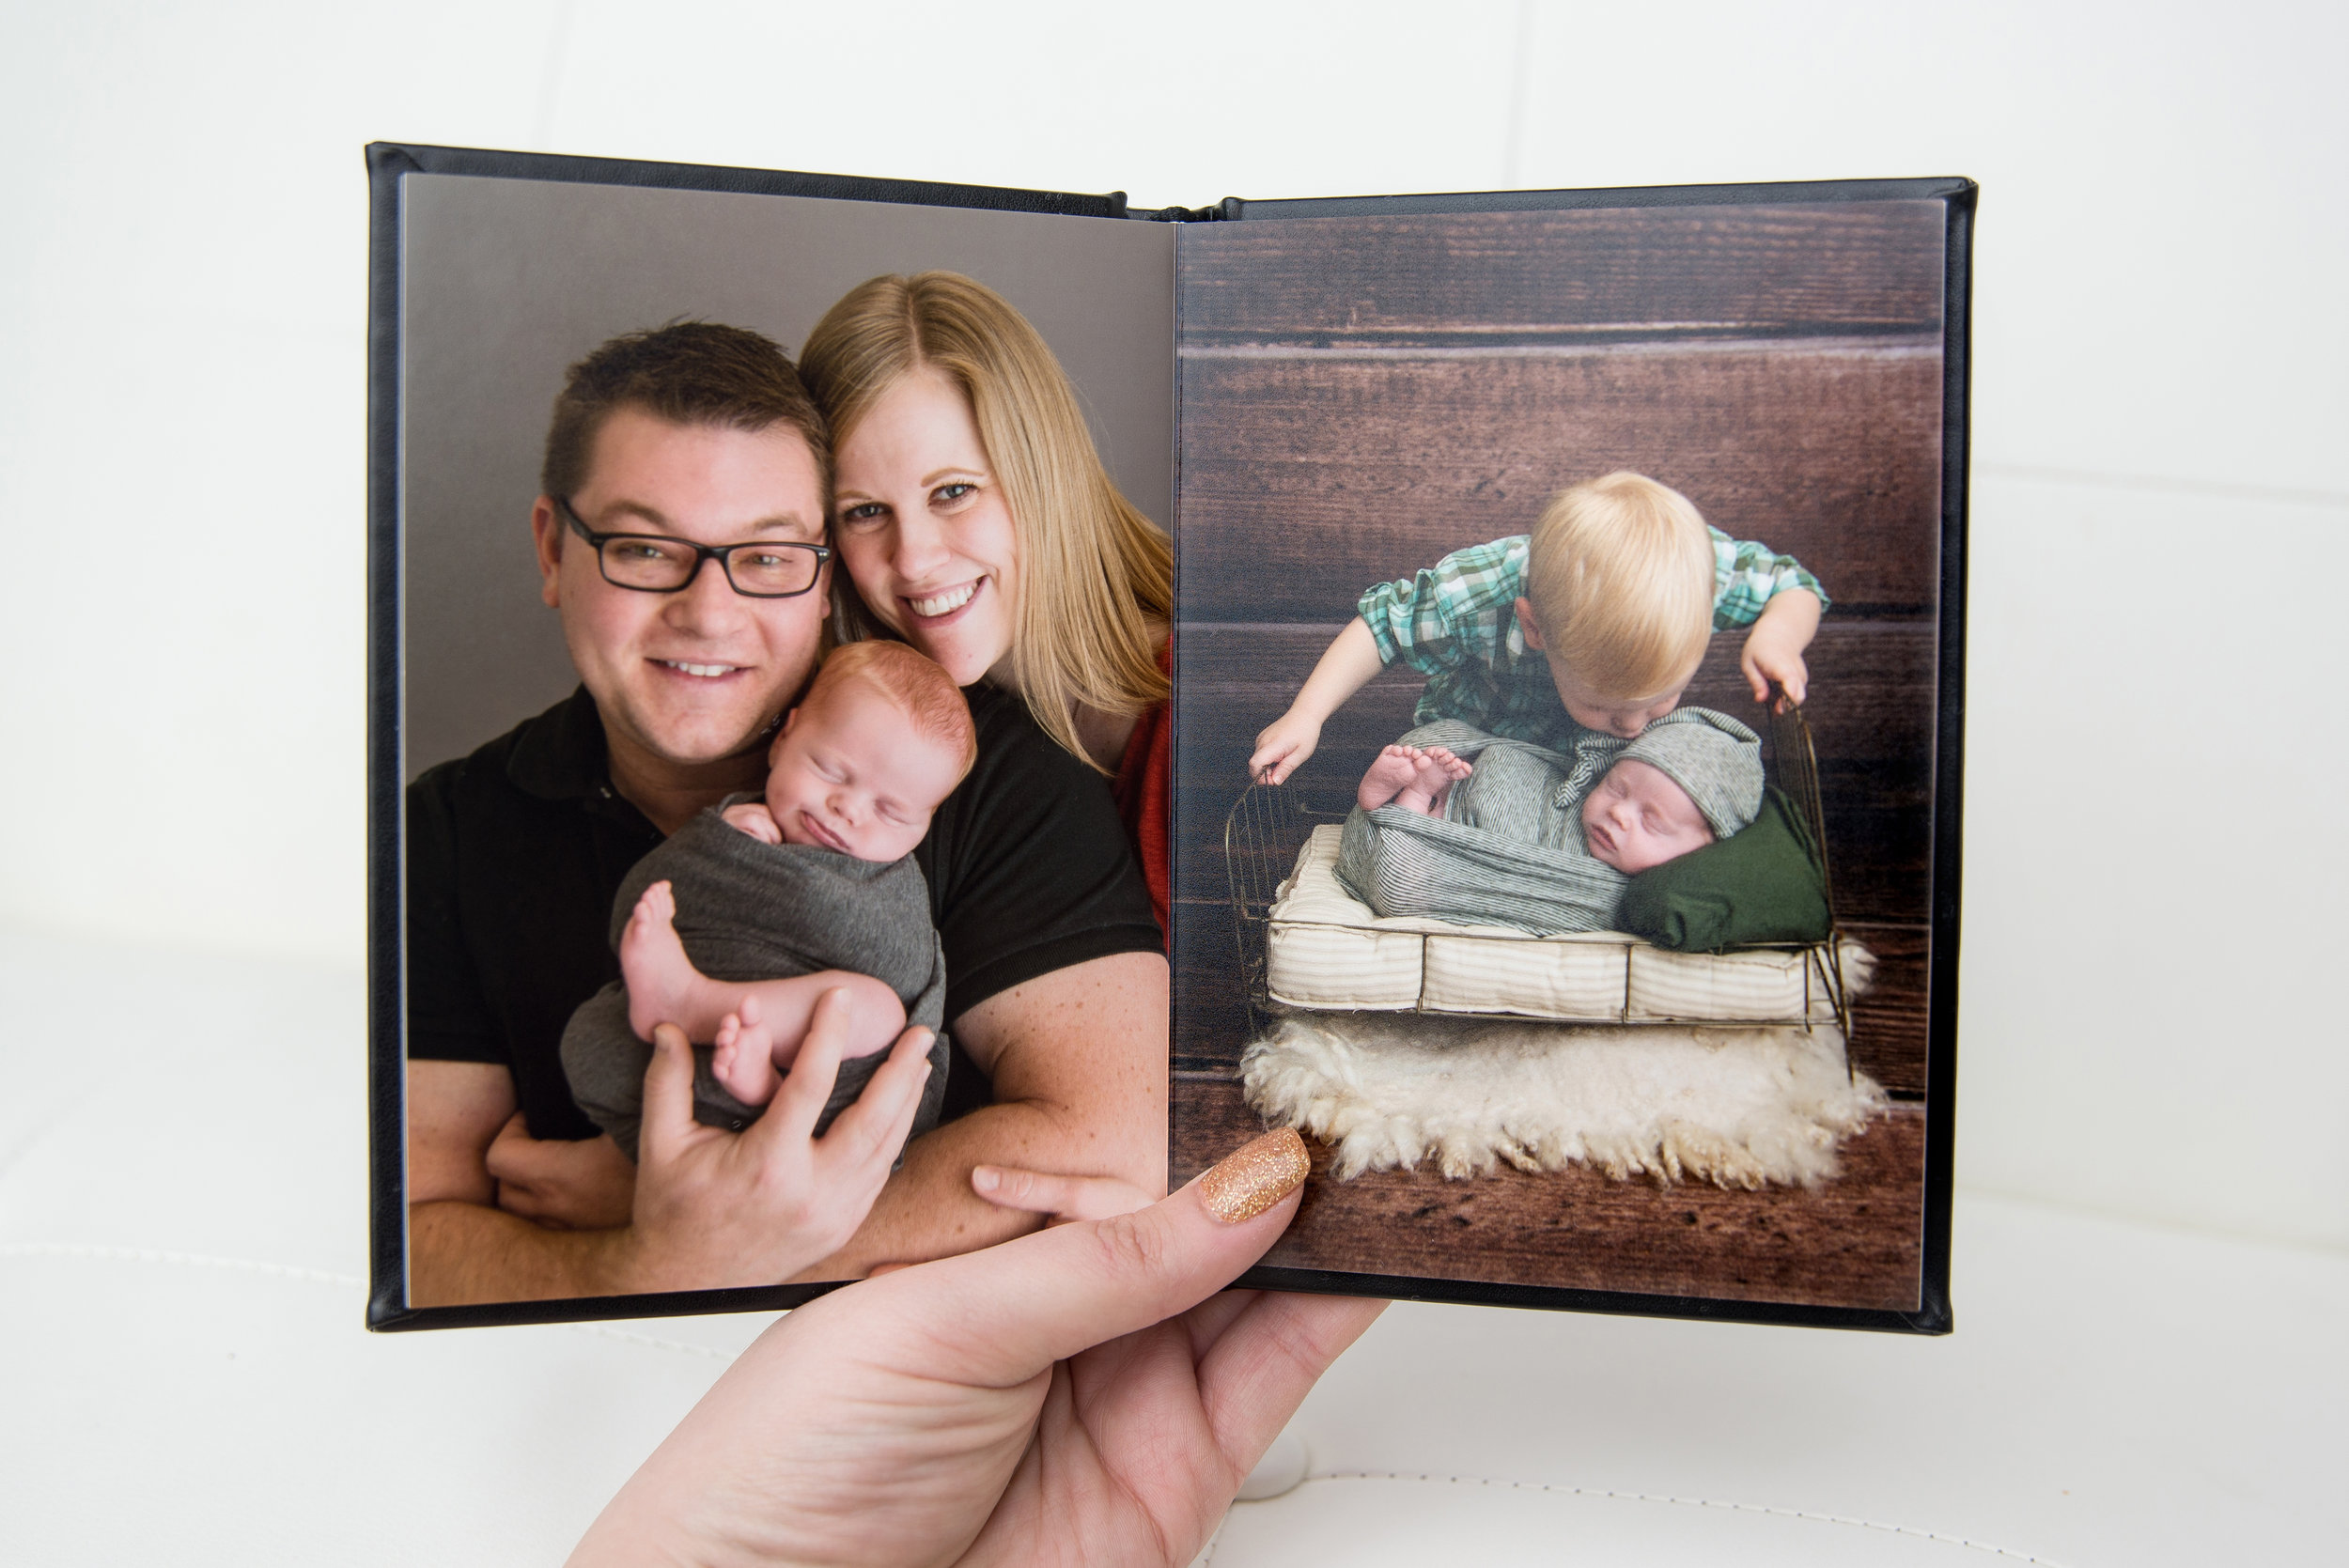 st-louis-photographer-the-session-book-hand-holding-book-open-showing-newborn-session-images.jpg